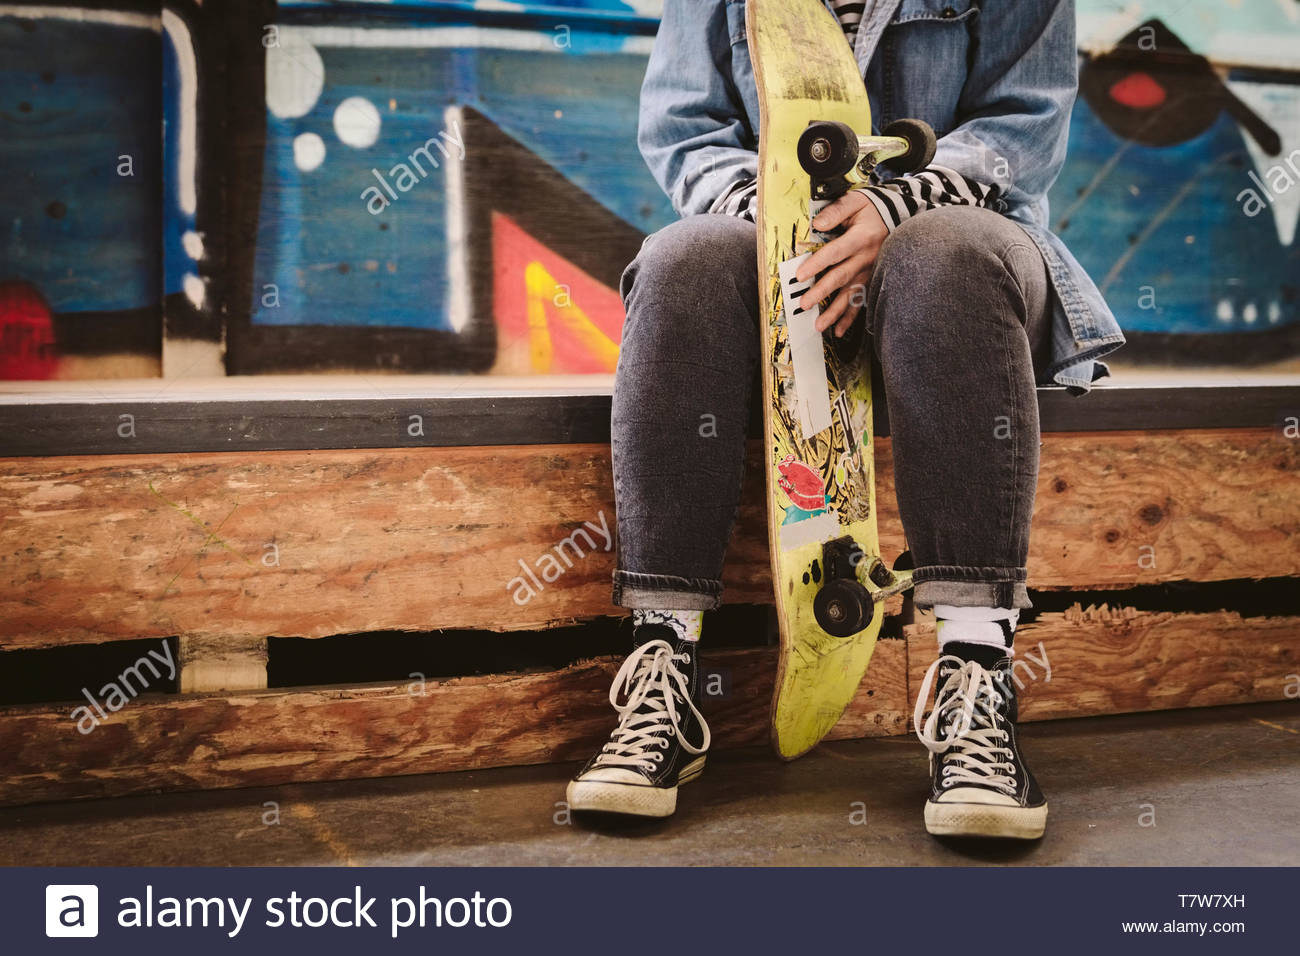 Woman holding skateboard at indoor skate park - Stock Image